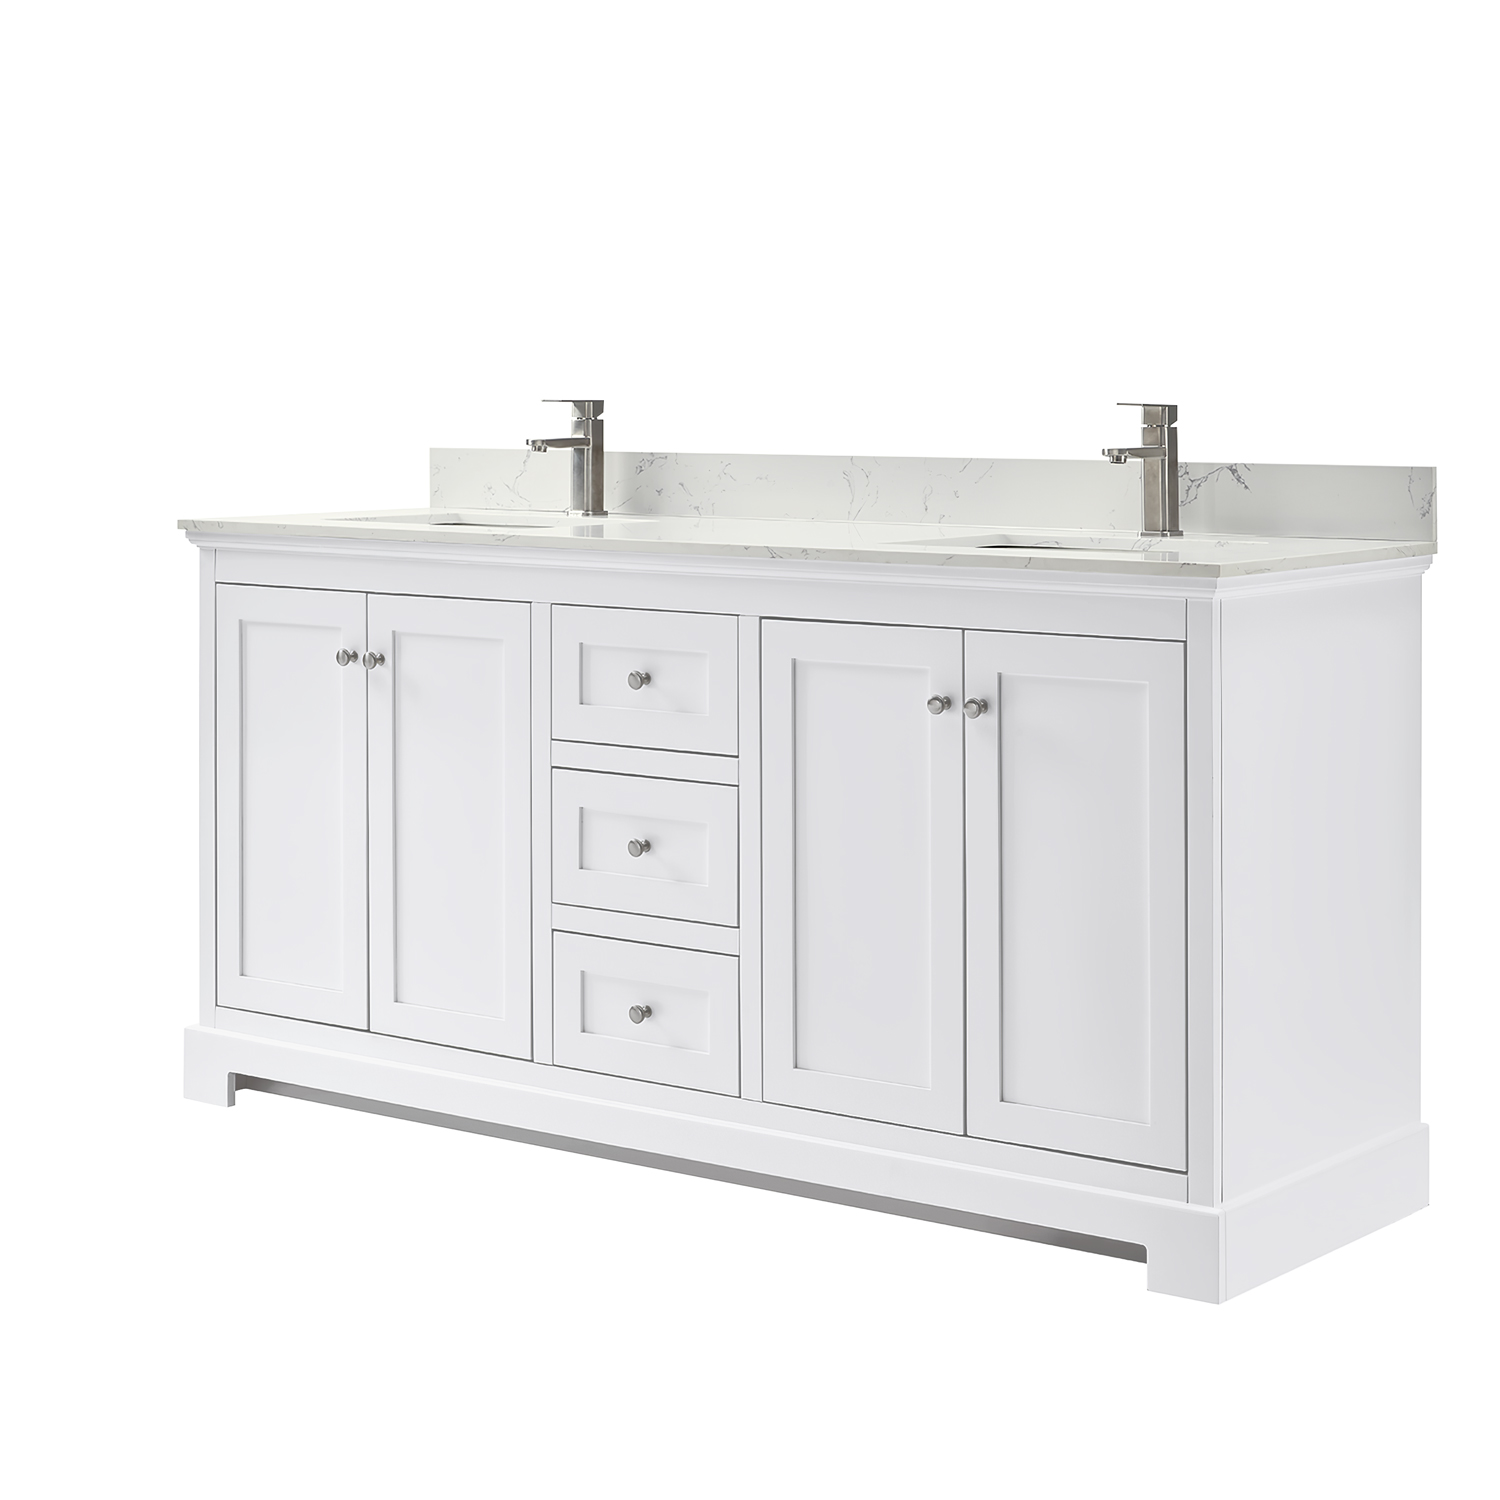 Ryla 72 Double Bathroom Vanity White Beautiful Bathroom Furniture For Every Home Wyndham Collection